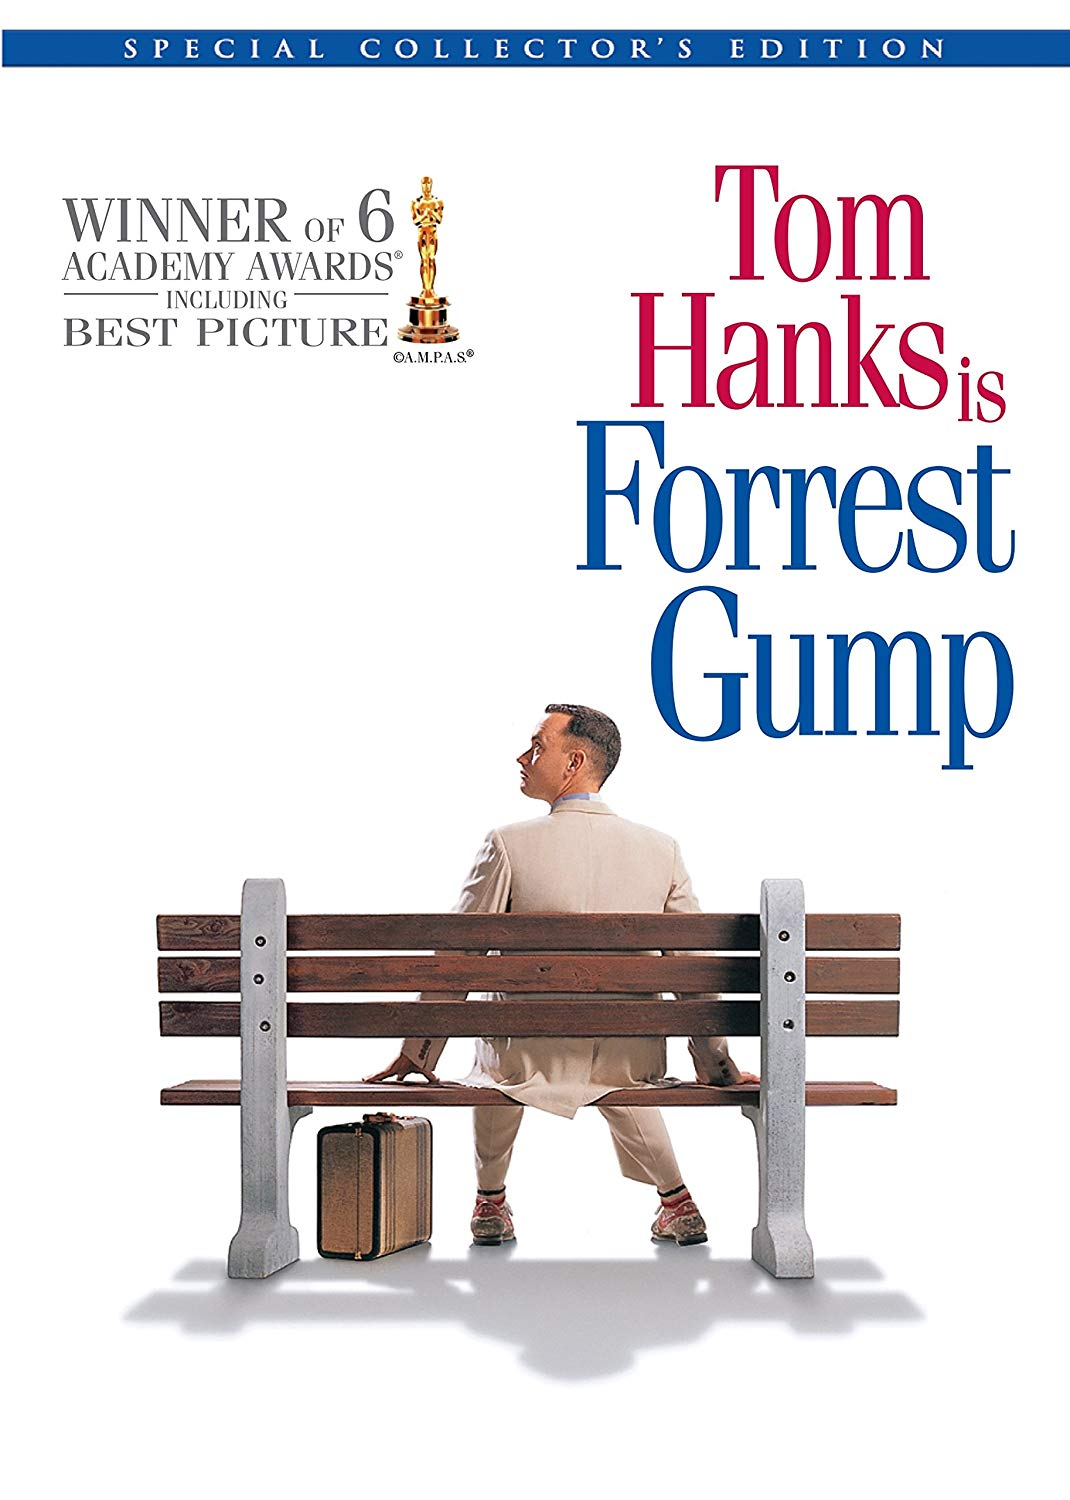 Tom Hanks Helped Pay For The Iconic 'Forrest Gump' Running Scene Himself